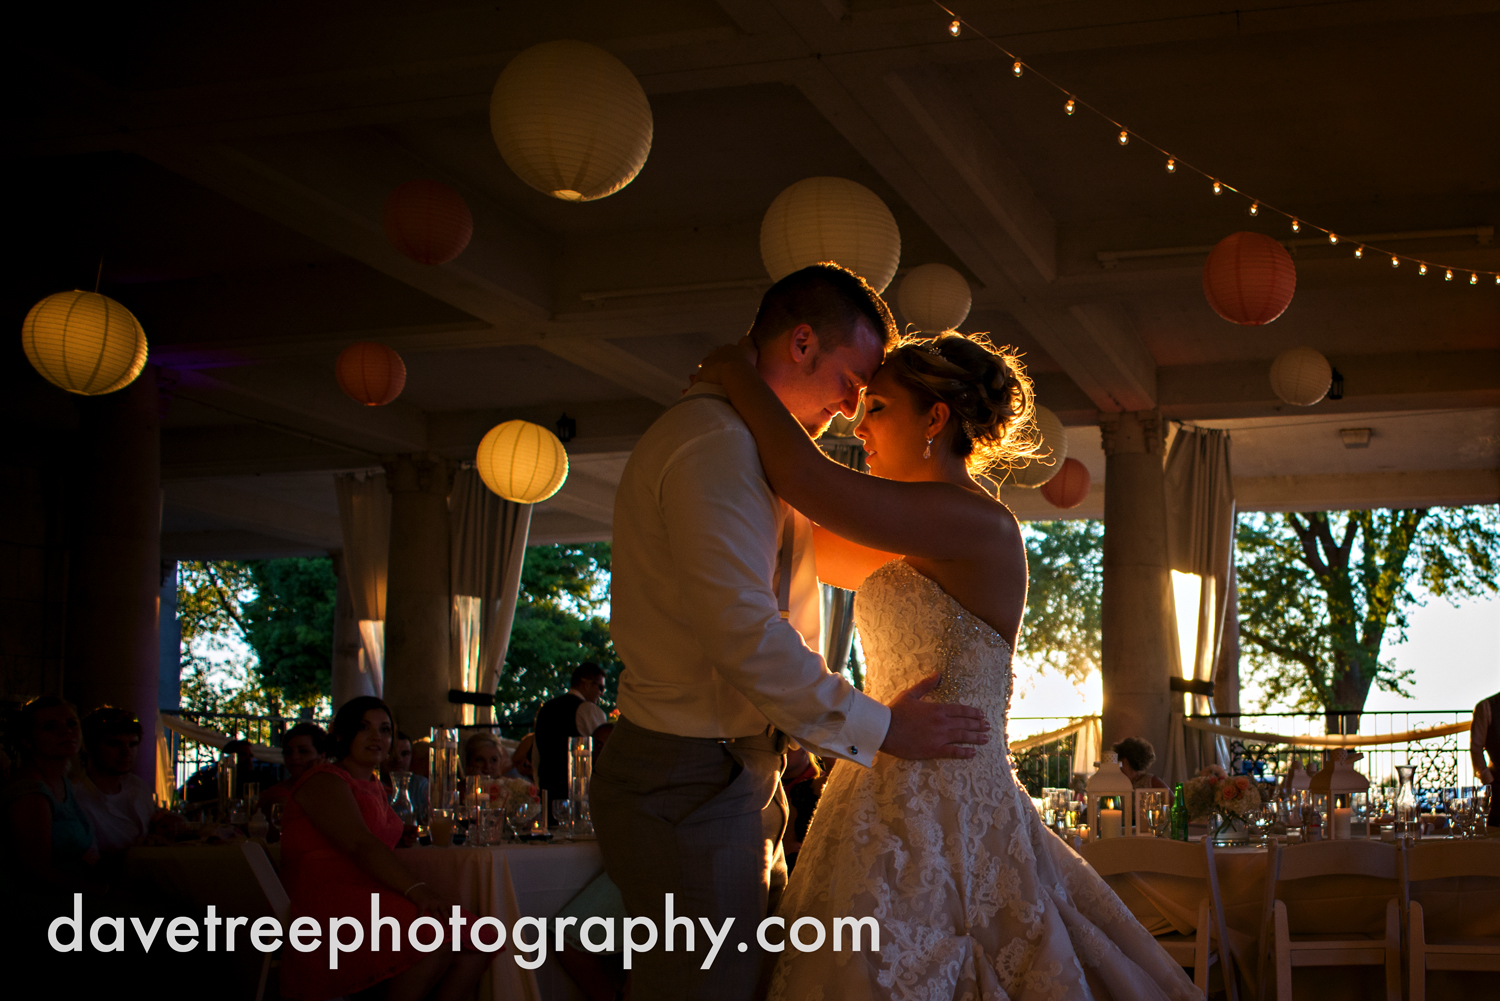 veranda_wedding_photographer_st_joseph_wedding_126.jpg